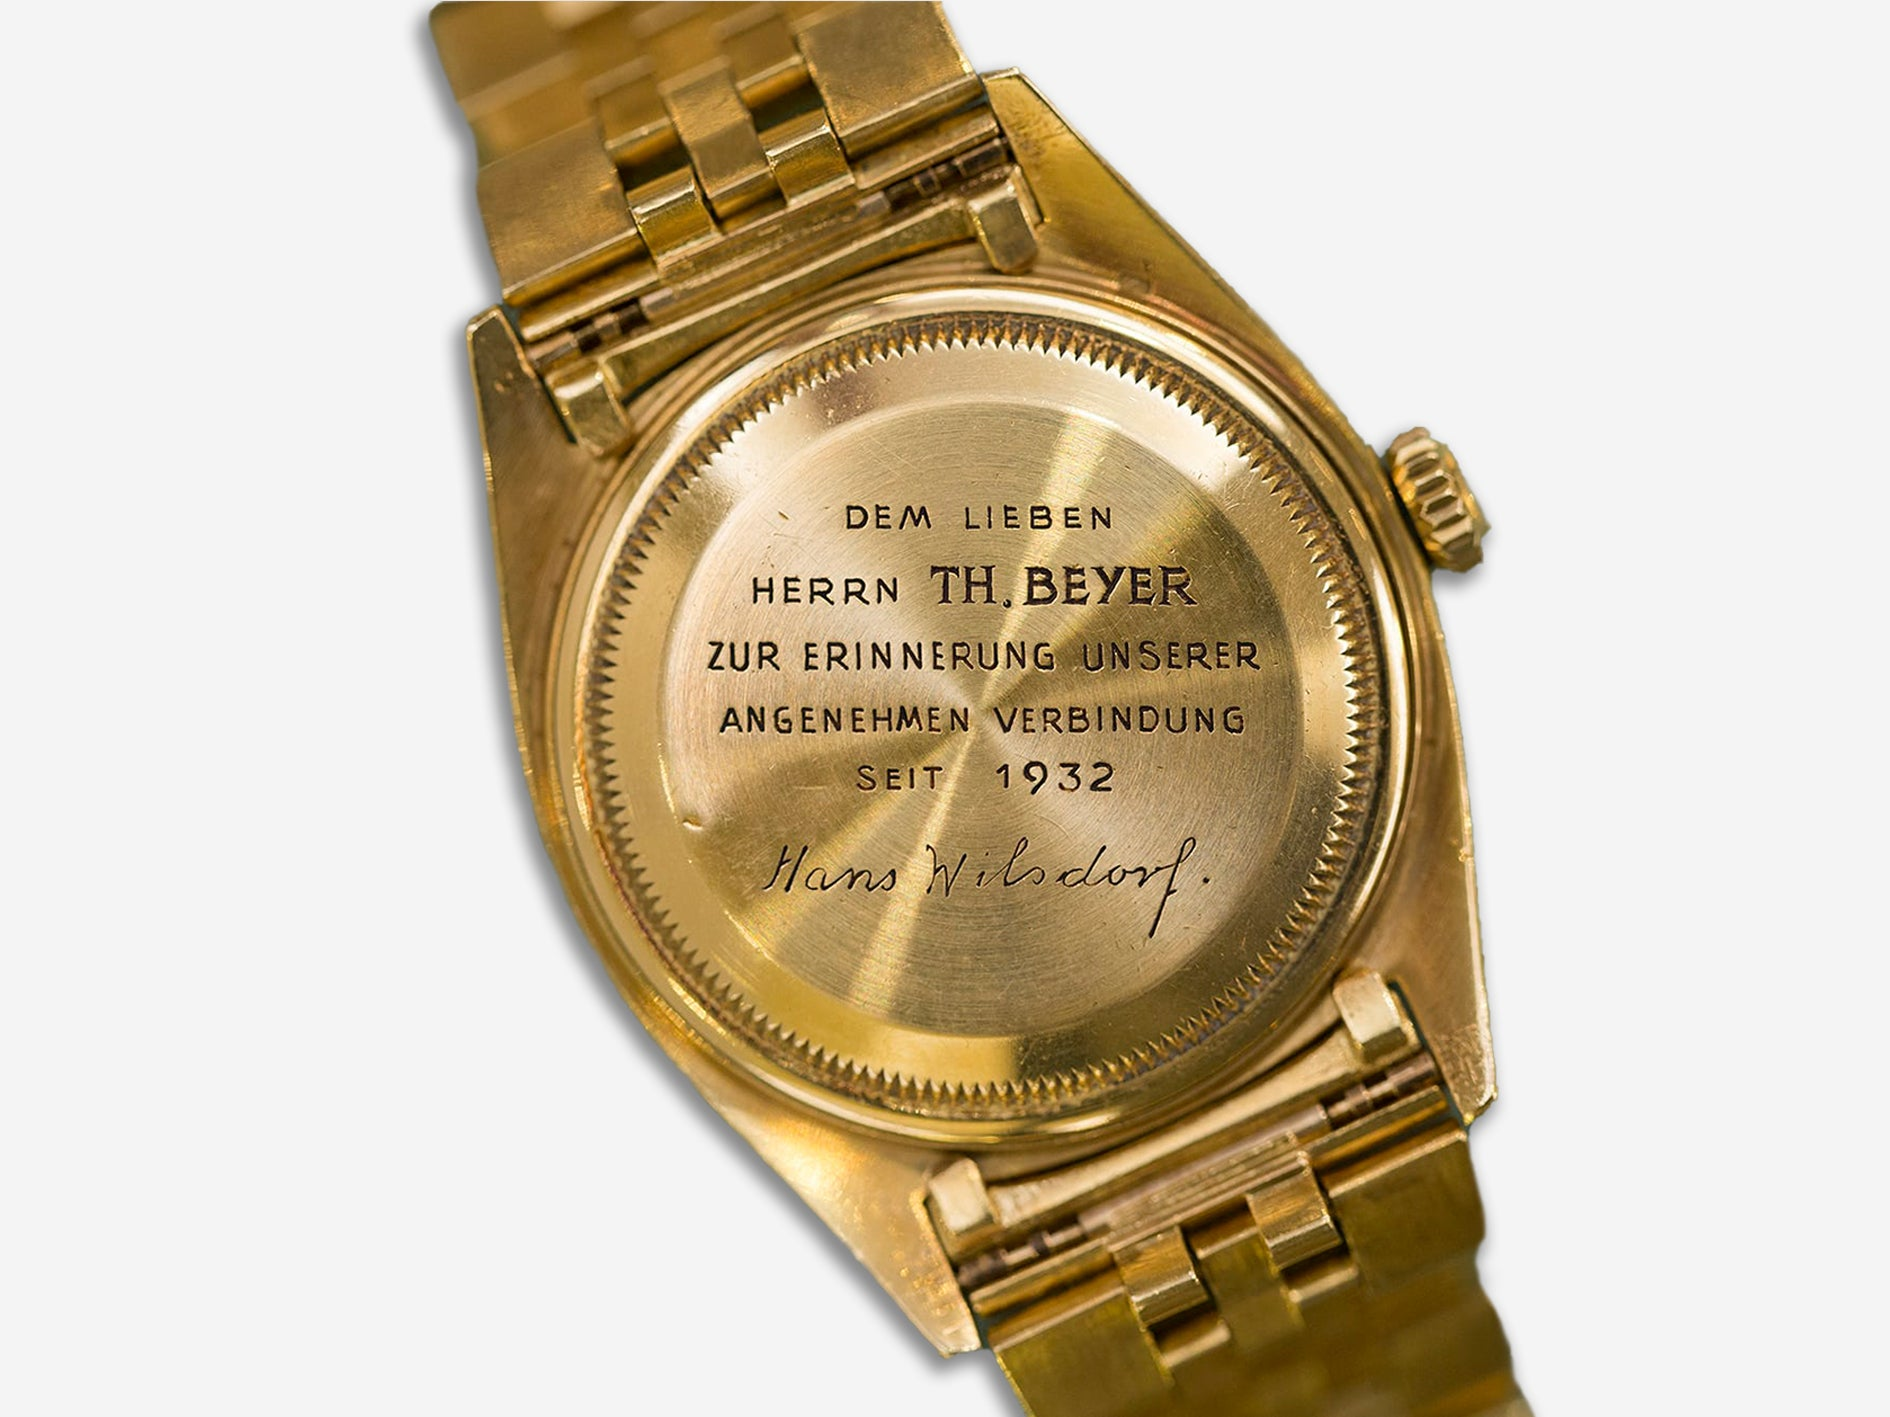 Caseback of a Rolex Day Date gifted from Hans Wilsdorf to Theodore Beyer